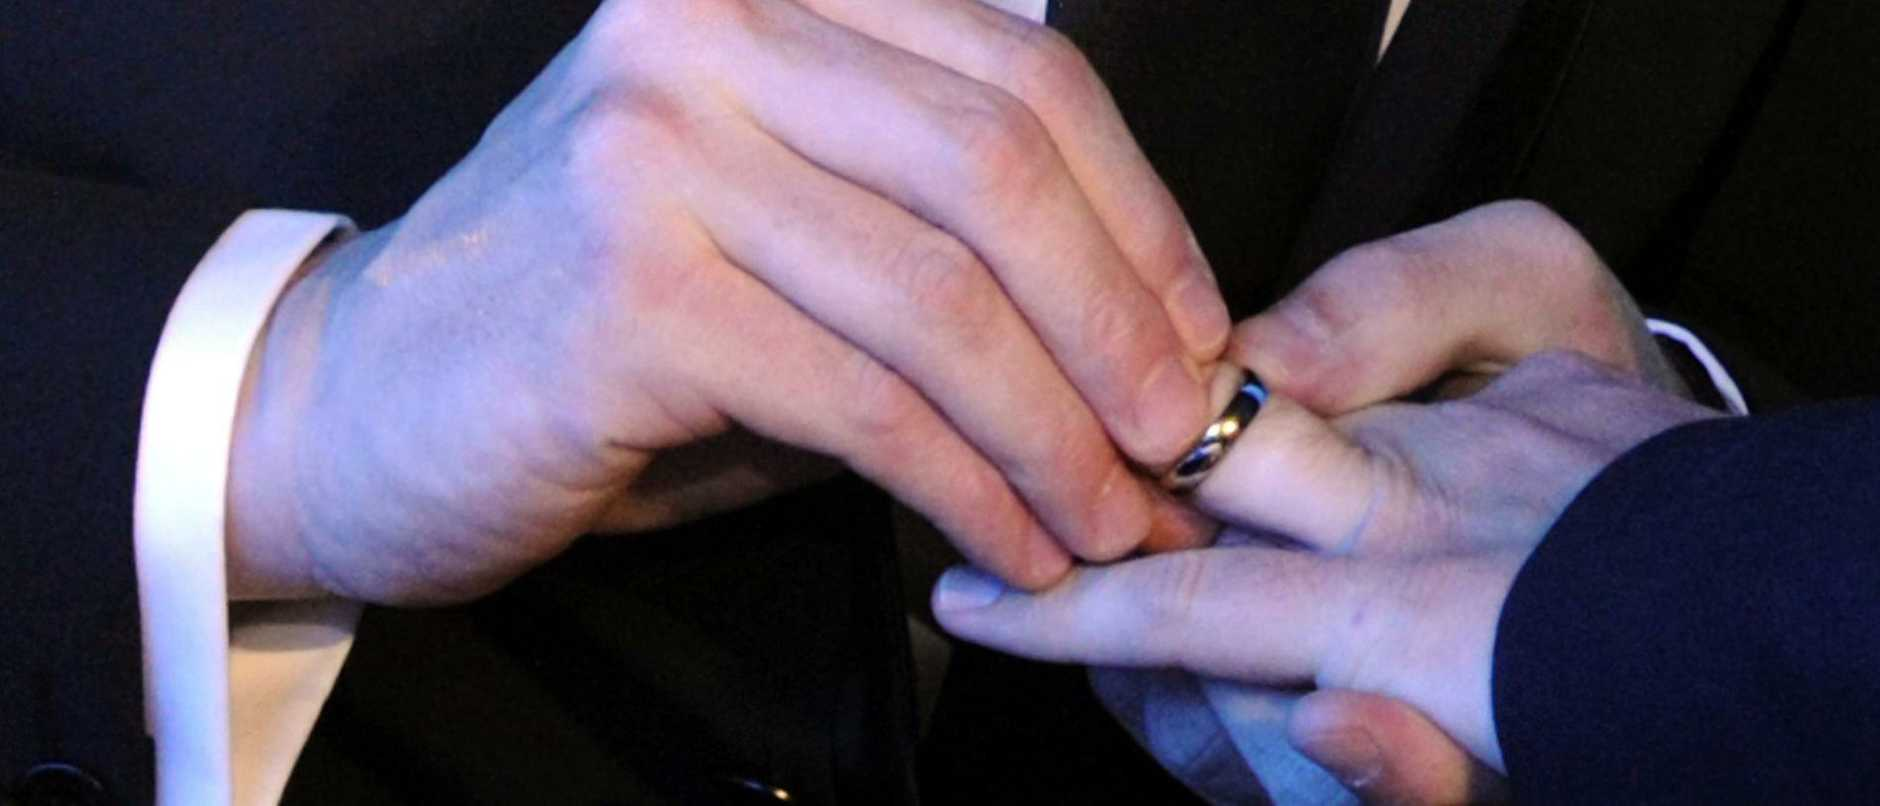 Close up of Bruno Boileau and Vincent Autin exchanging their wedding ring during their marriage, France's first official gay marriage,  in the city hall in Montpellier on May 29, 2013. France is the 14th country to legalise same-sex marriage, an issue that has also divided opinion in many other nations. The definitive vote in the French parliament came on April 23 when the law was passed legalising both homosexual marriages and adoptions by gay couples. AFP PHOTO/BORIS HORVAT  Picture: Afp